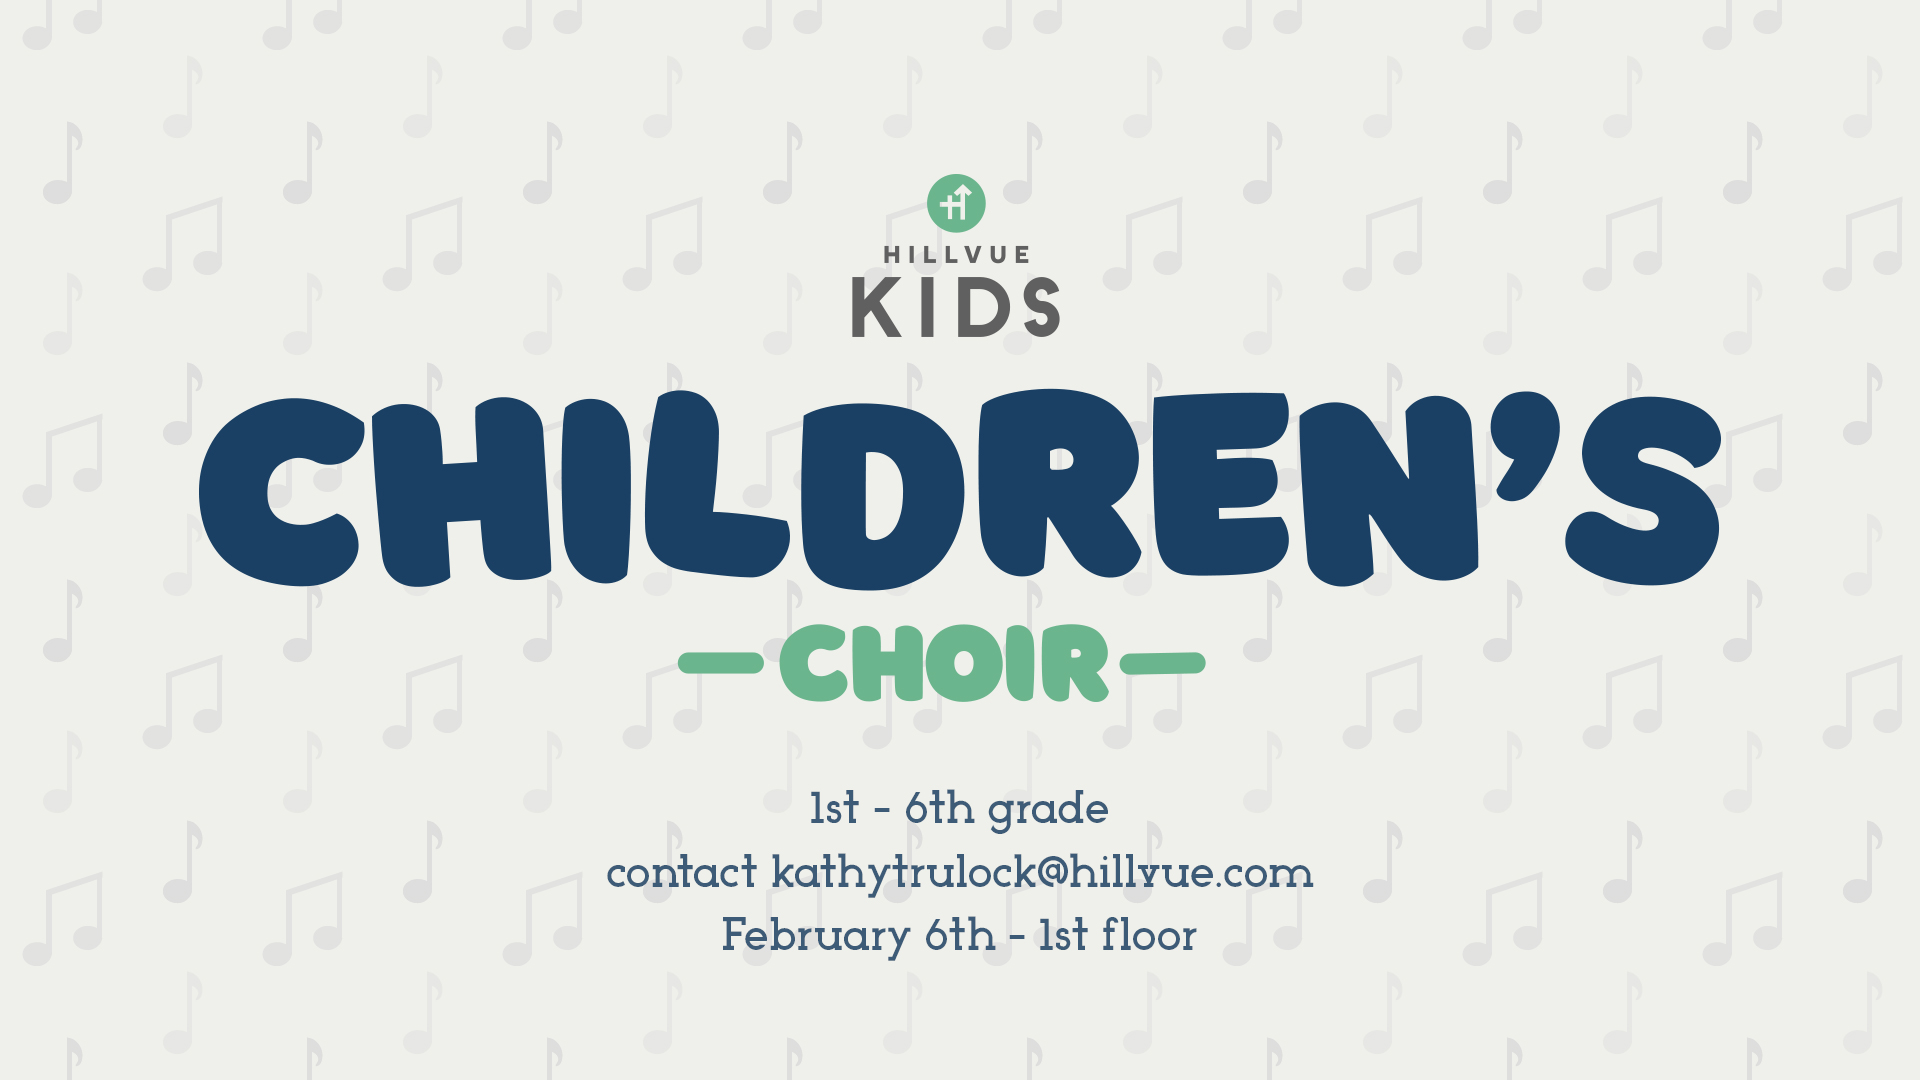 Contact Pastor Kathy Trulock to find out how your kids can be involved in Children's Choir.